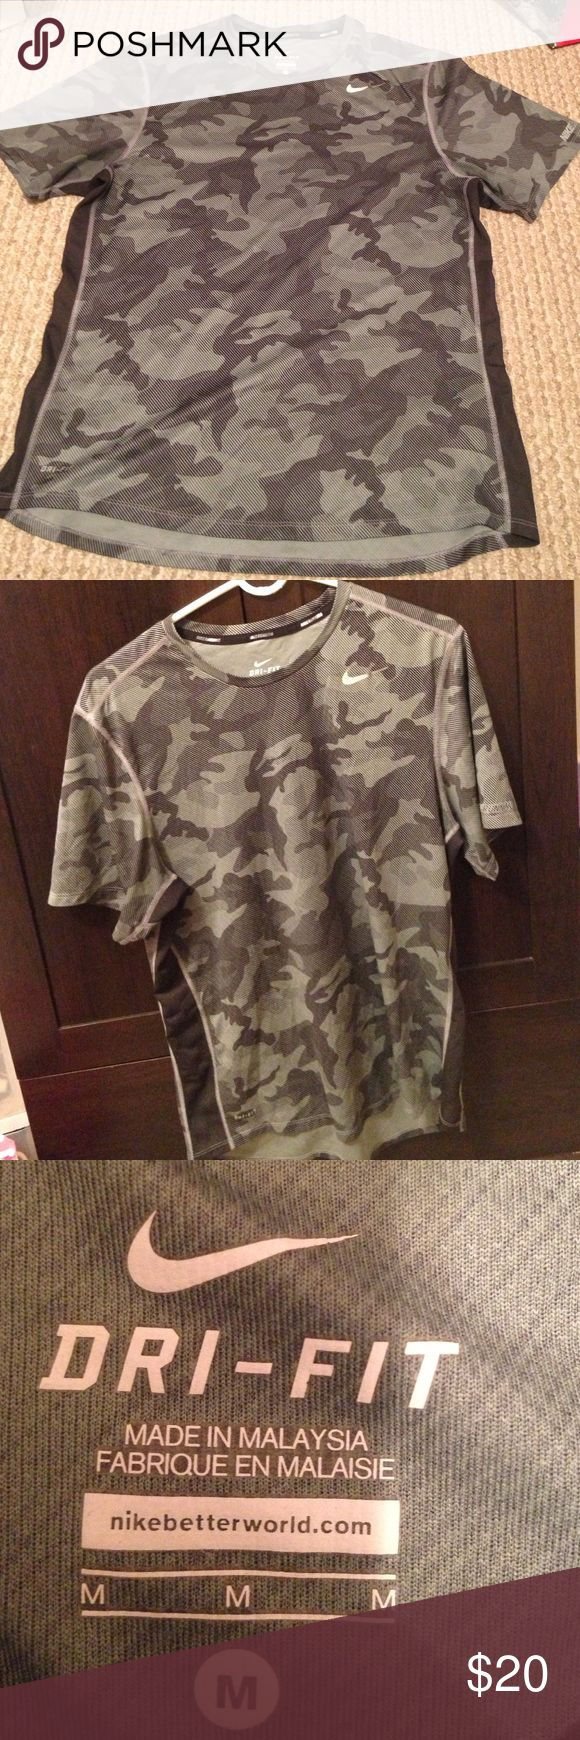 NIKE Dri-Fit Men's shirt size Medium Dri-Fit by NIKE men's gray camouflage shirt size Medium, worn but in very good condition! Nike Shirts Tees - Short Sleeve